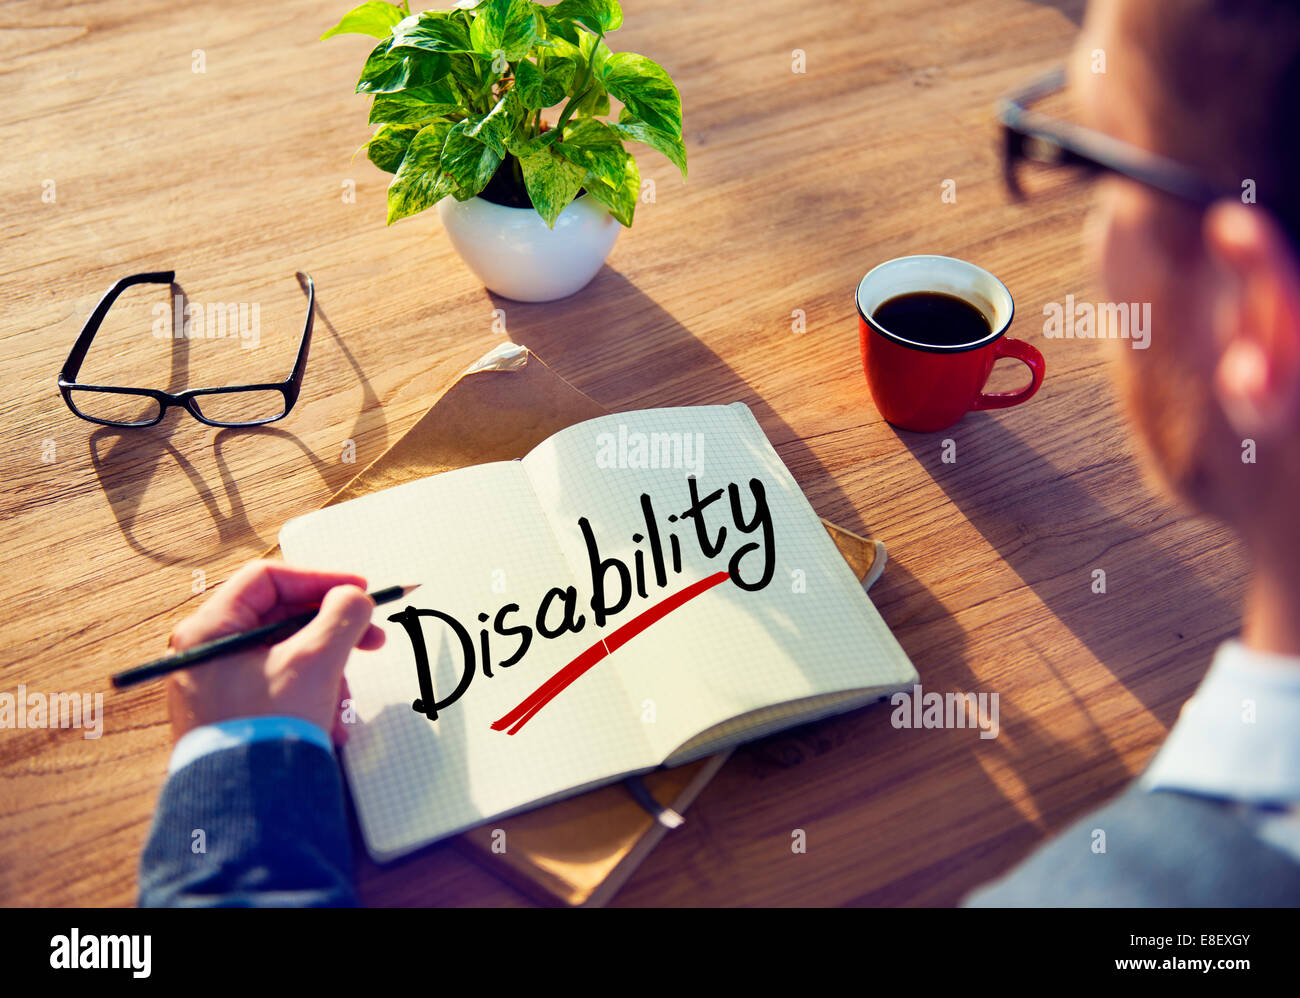 A Man Brainstorming about Disability Stock Photo